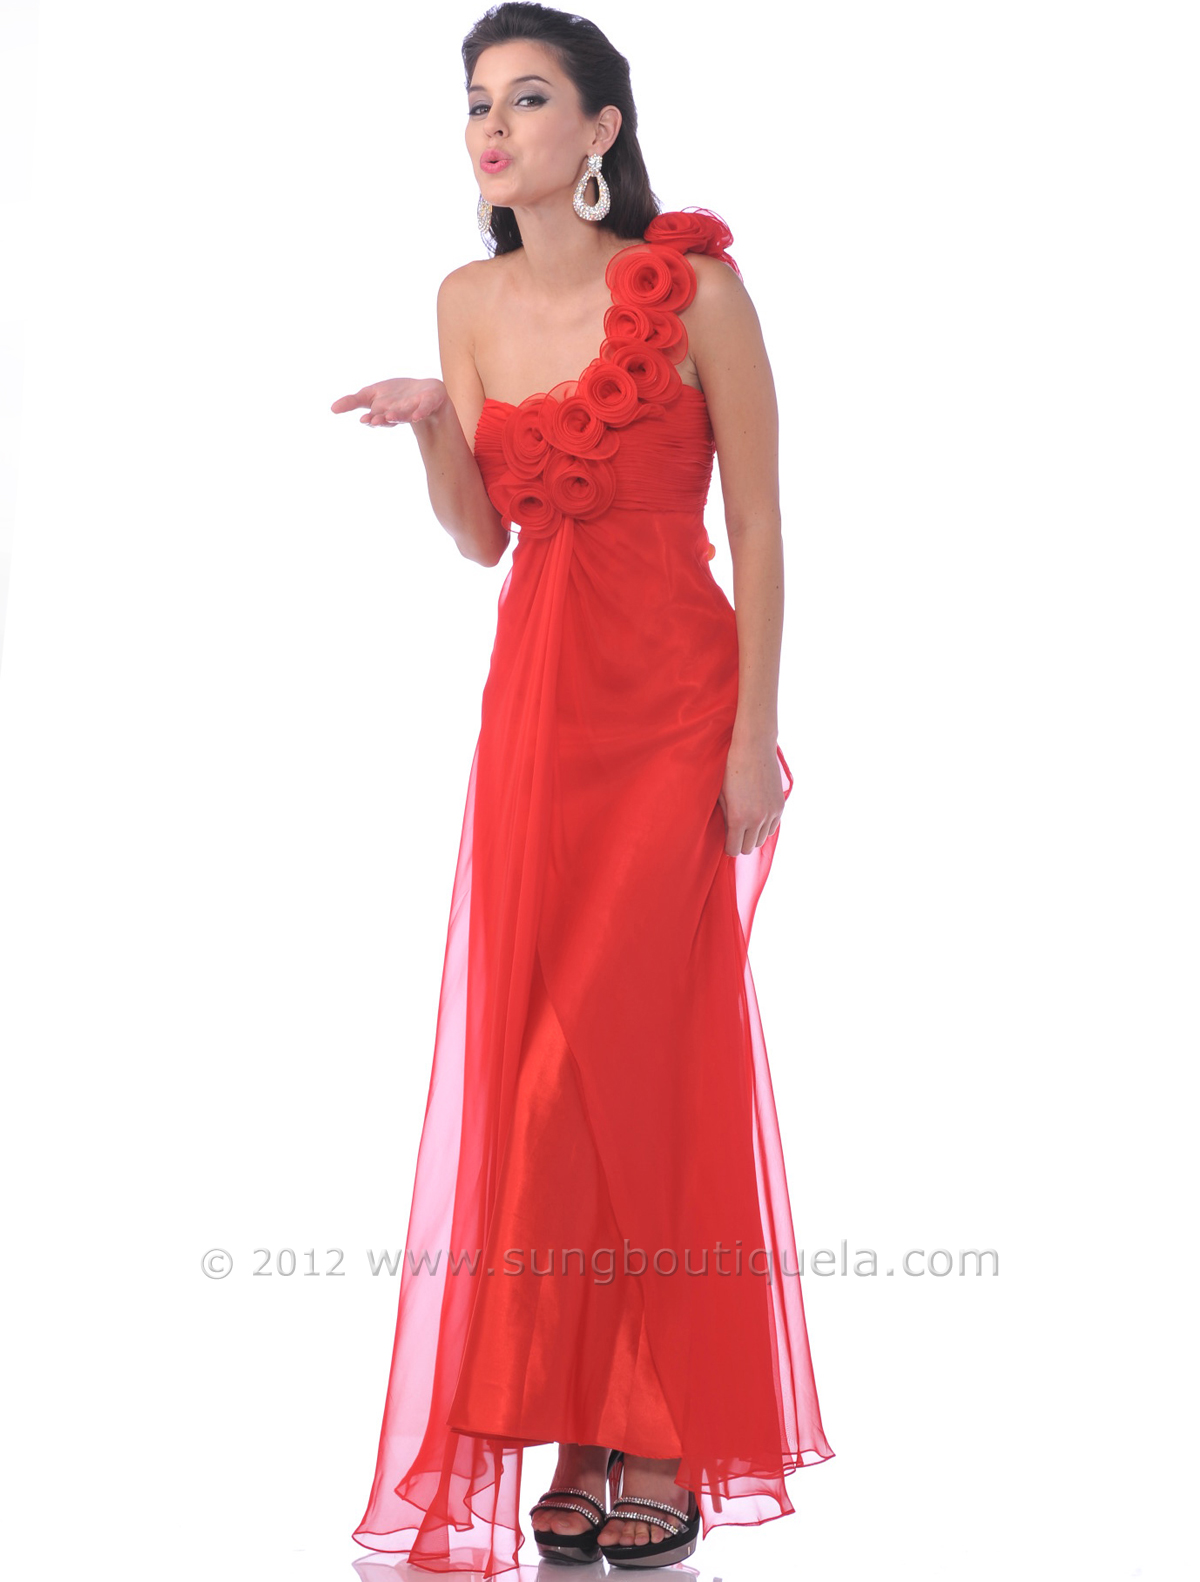 Phenomenal One Shoulder Chiffon Evening Dress Sung Boutique L A Hairstyles For Men Maxibearus